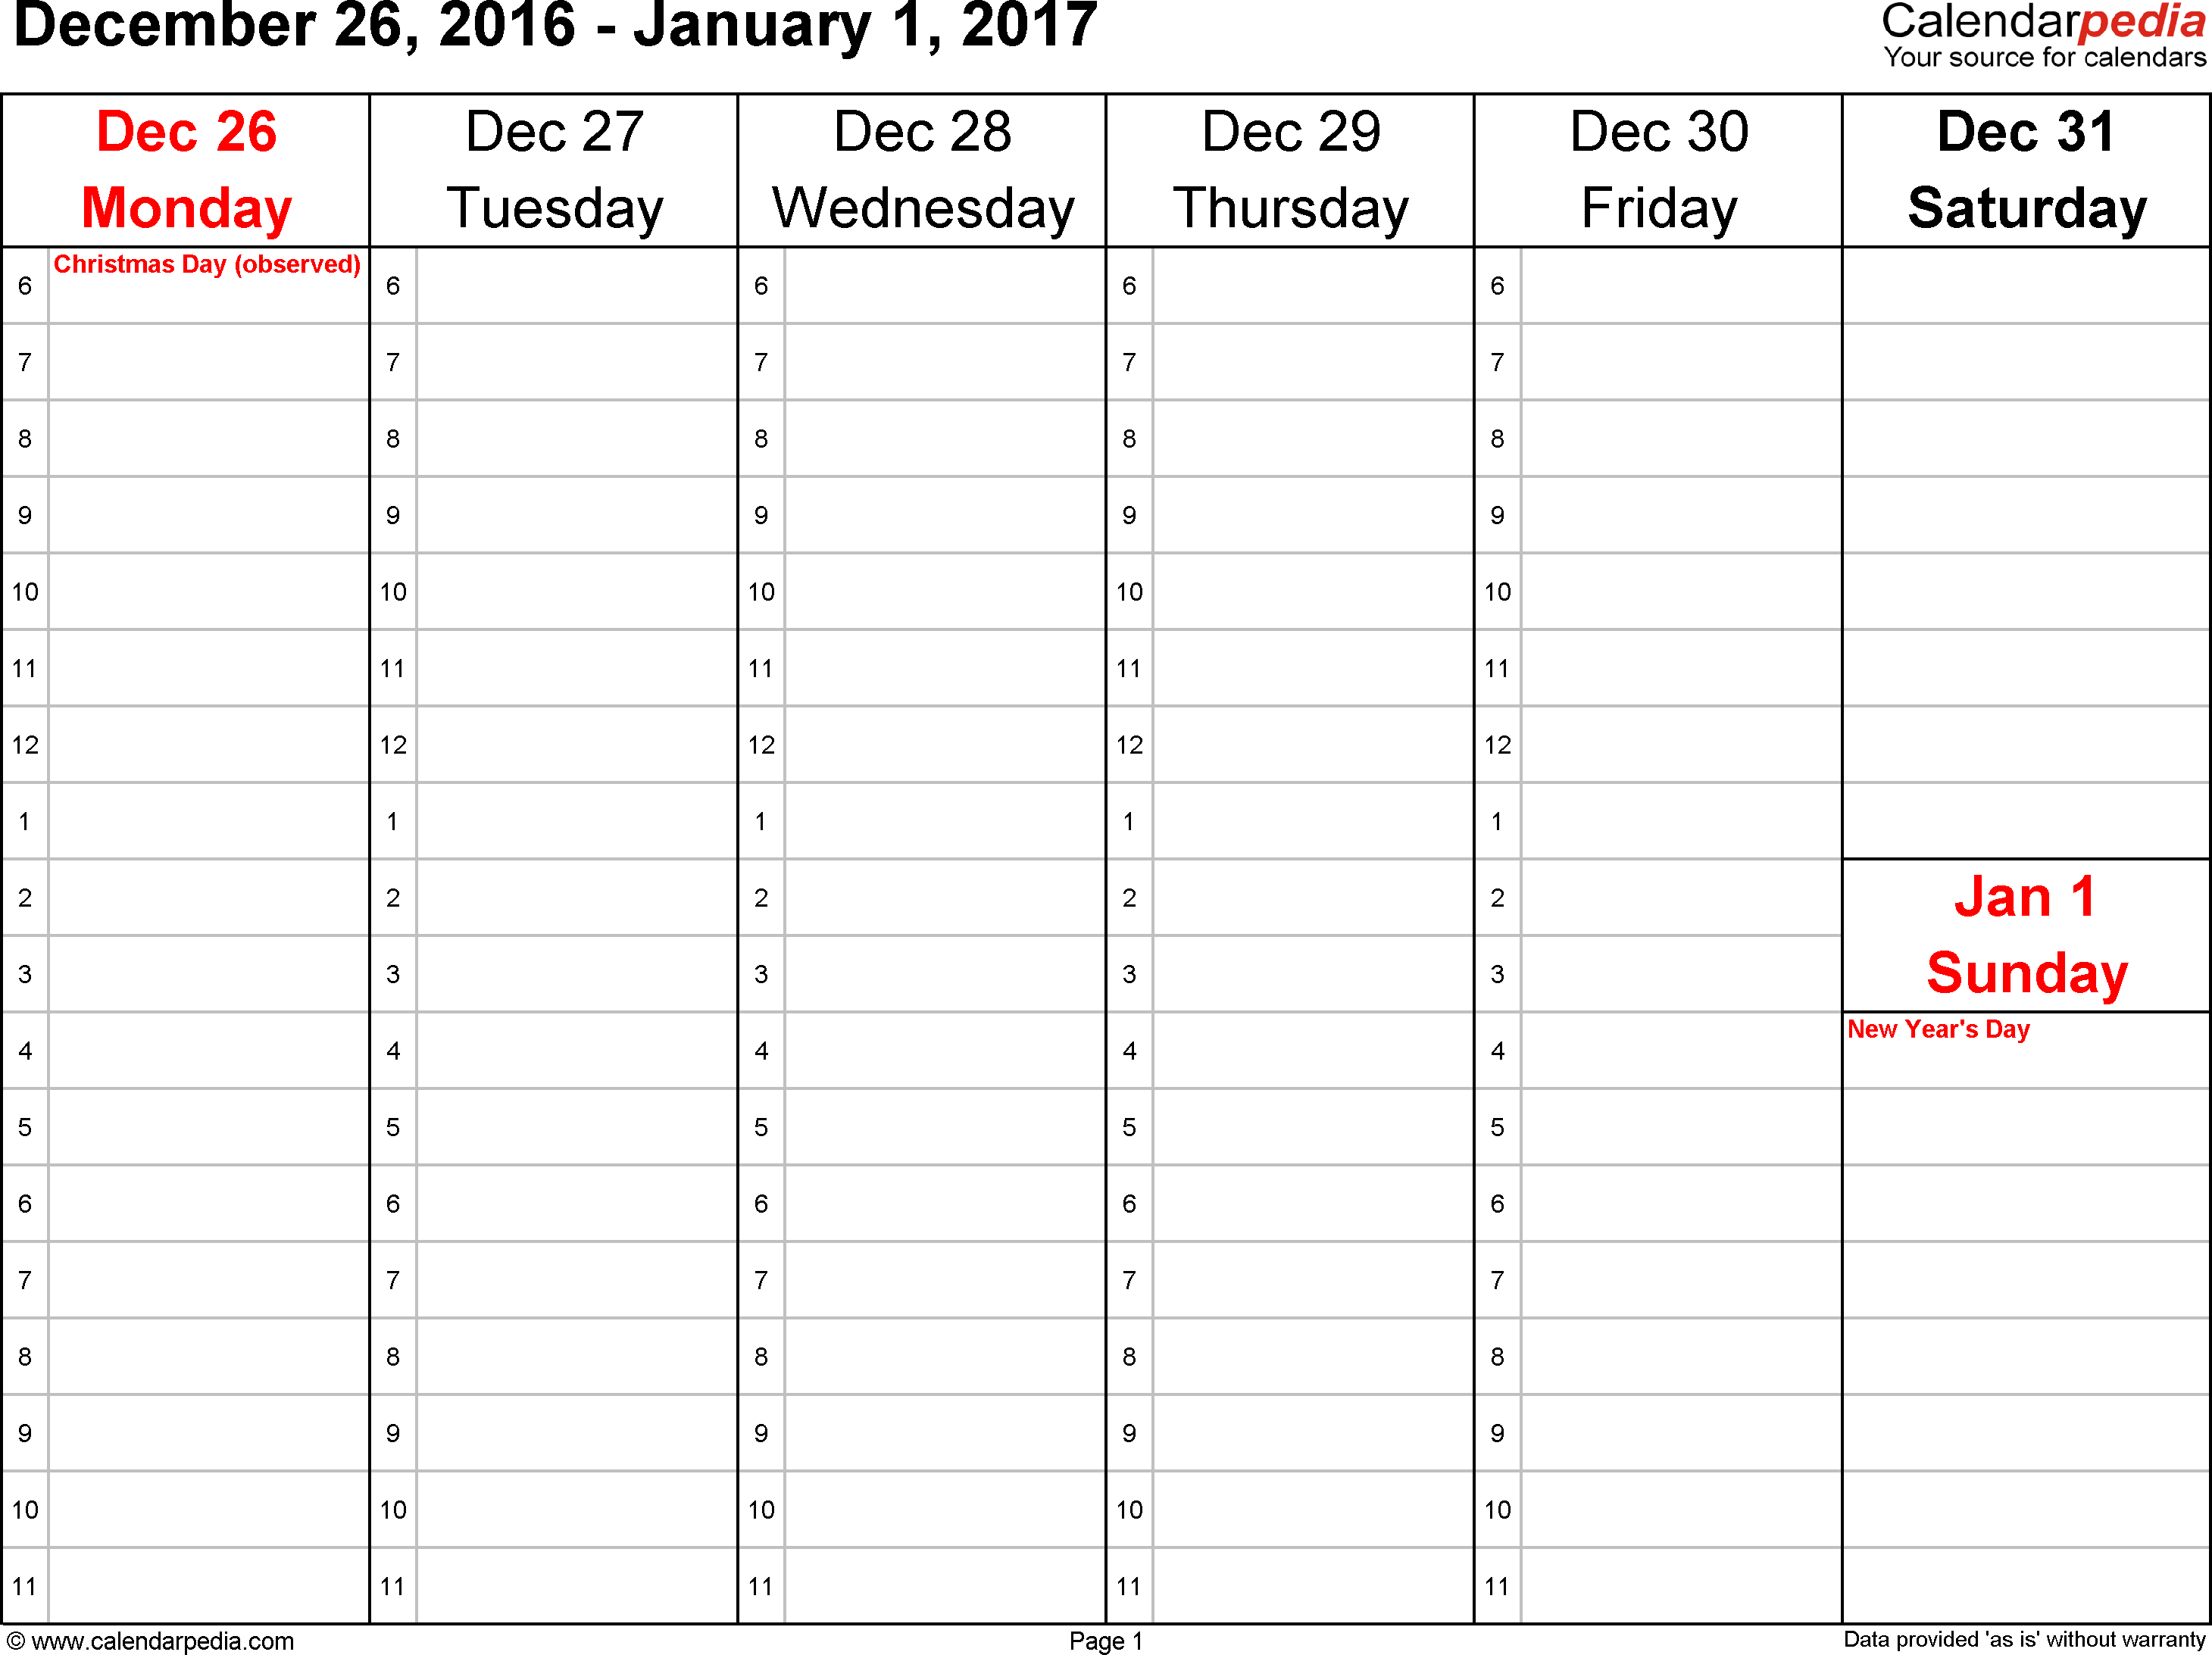 Weekly Calendar 2017 For Excel - 12 Free Printable Templates within 30 Day Workout Calendar Template